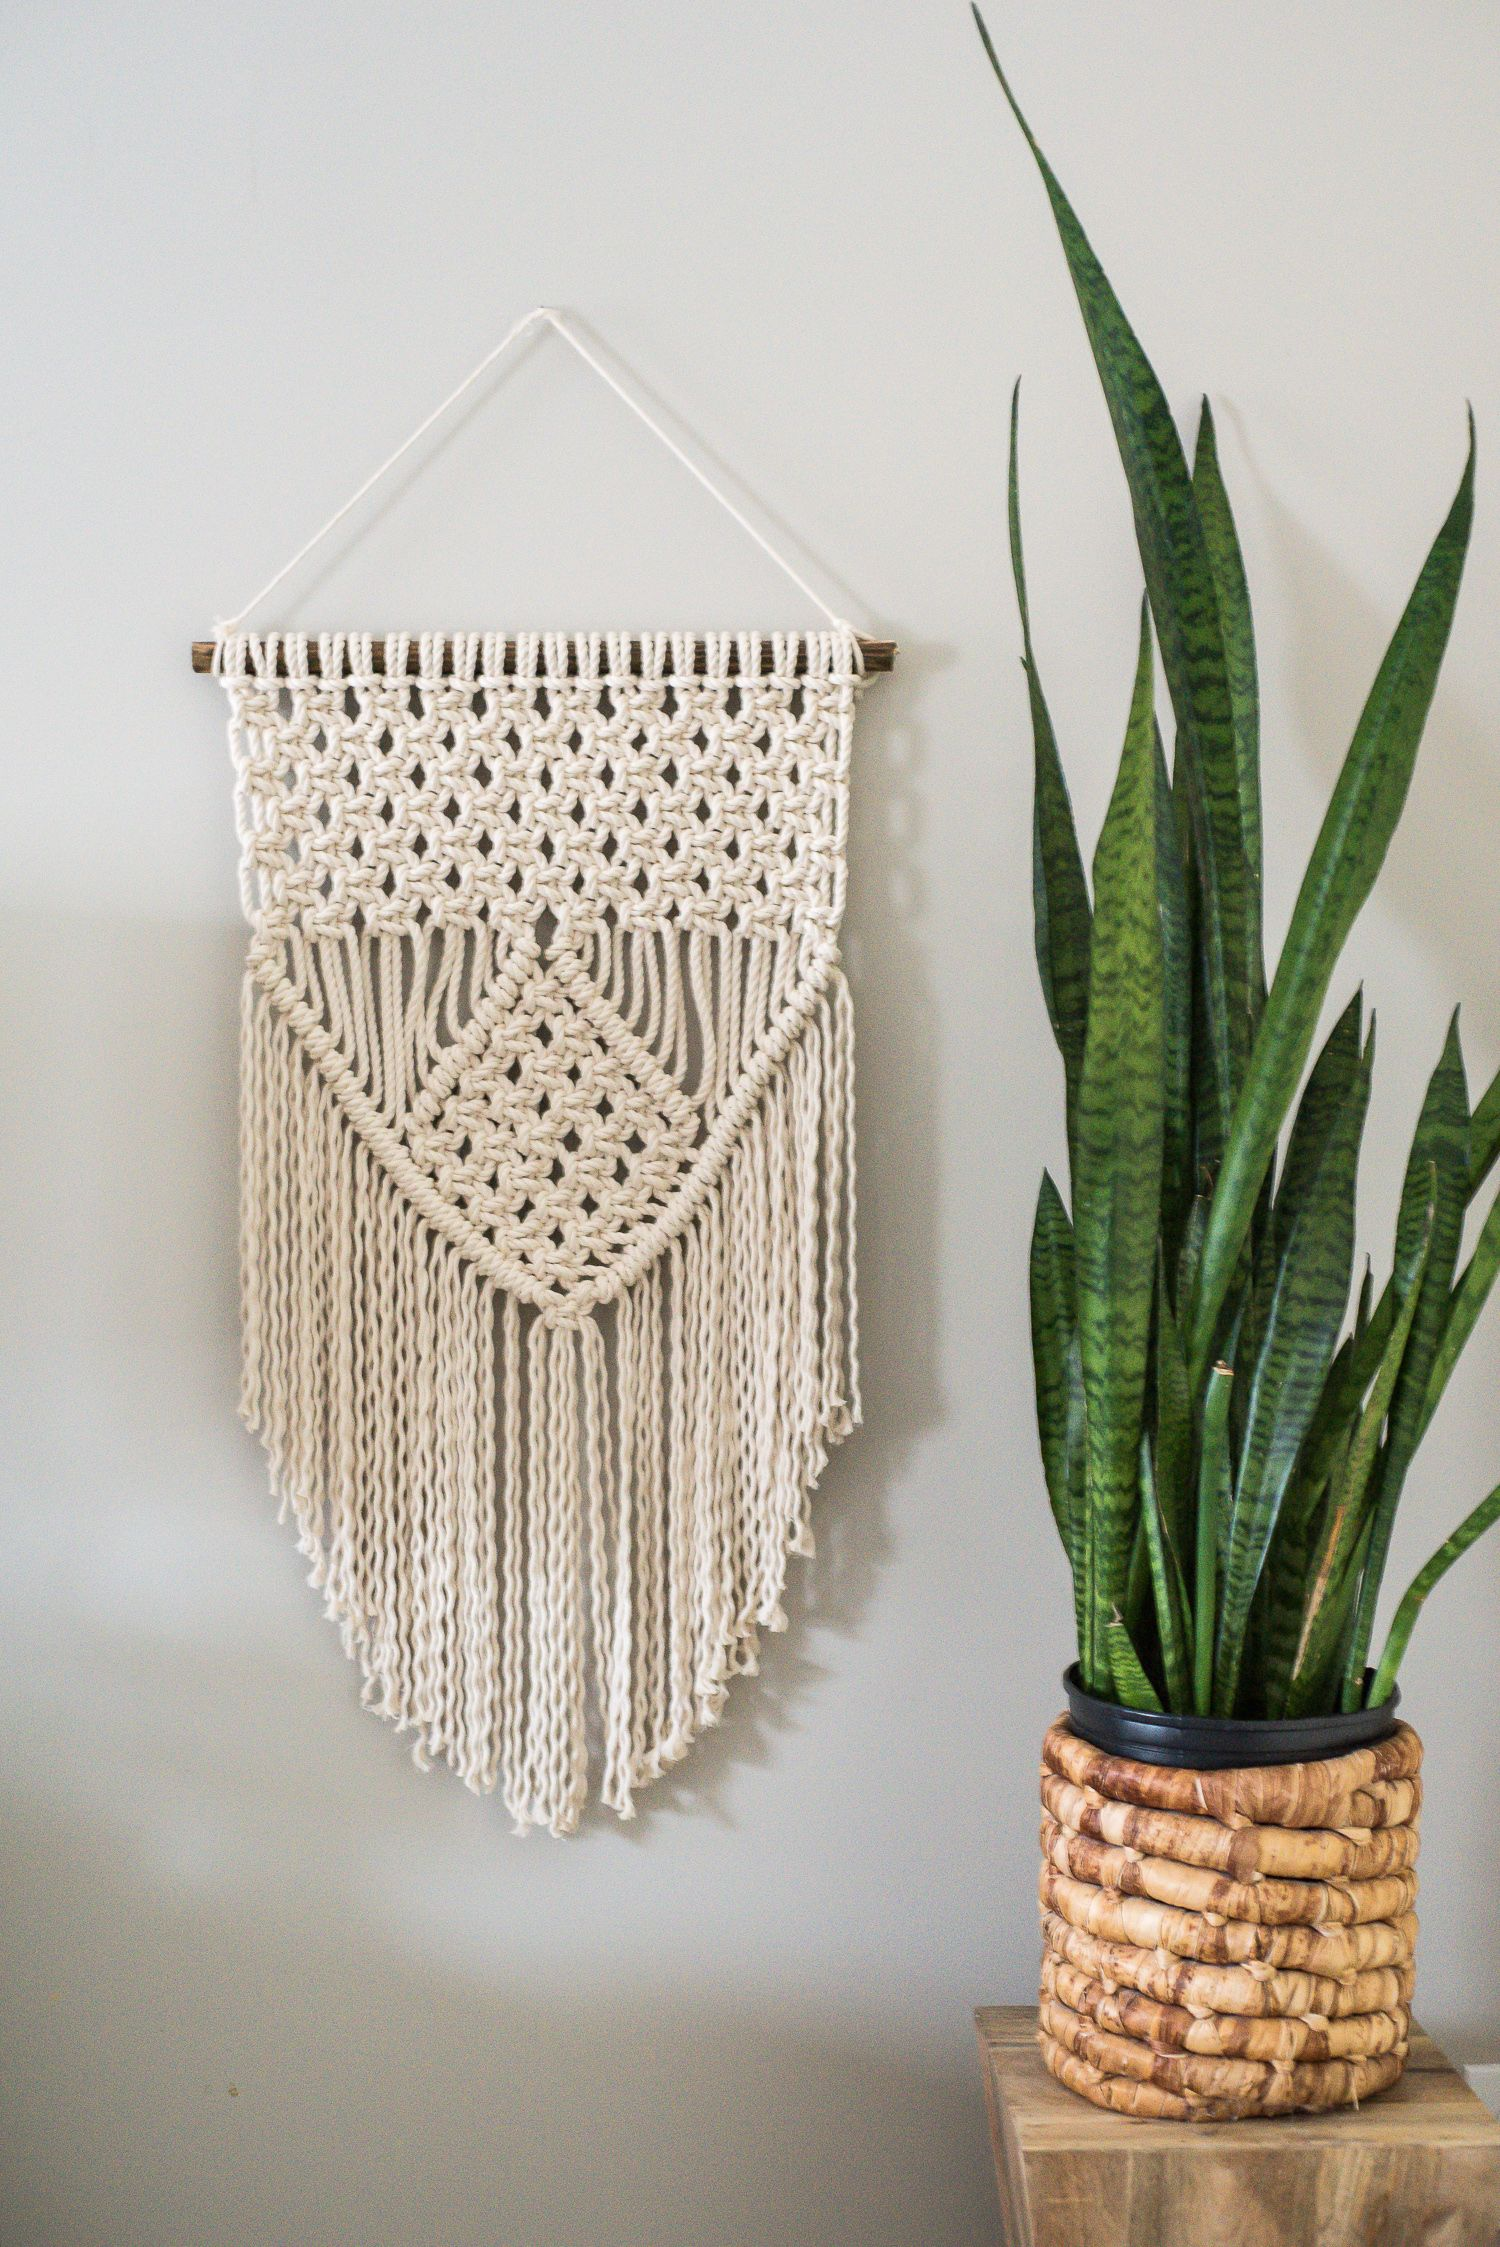 Learn three basic macrame knots to up